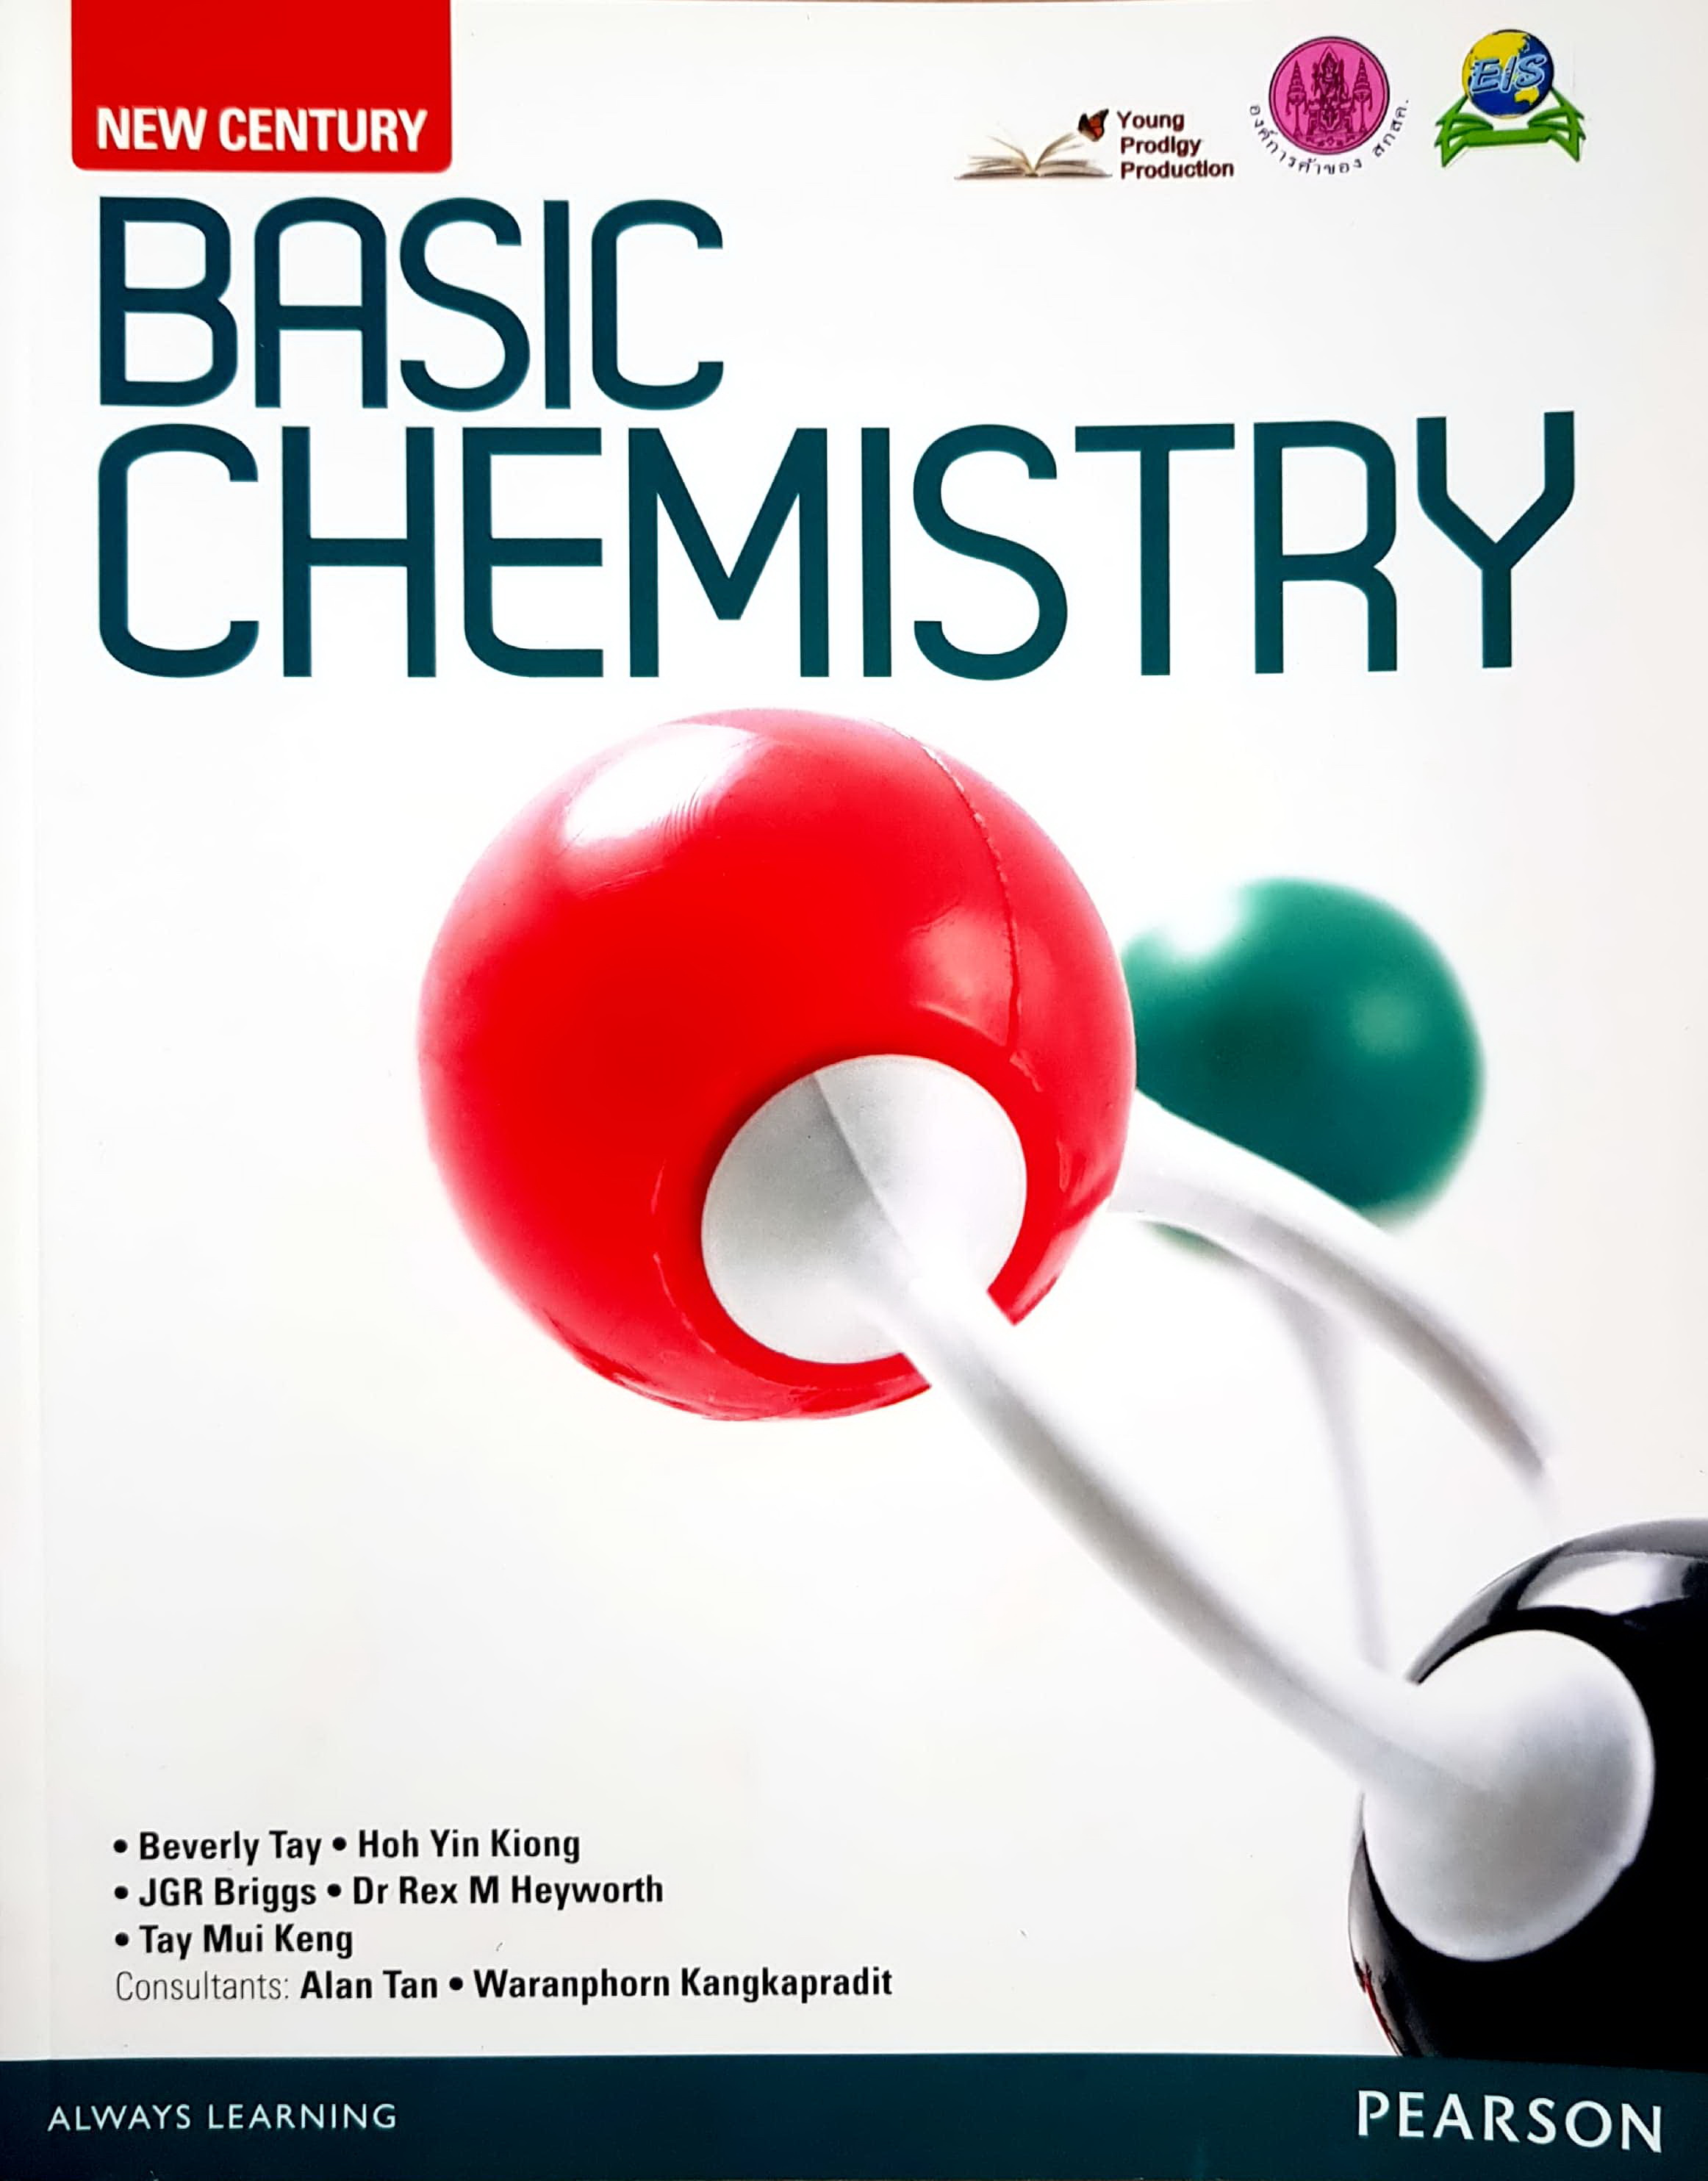 New Century Basic Chemistry for Secondary 4-6